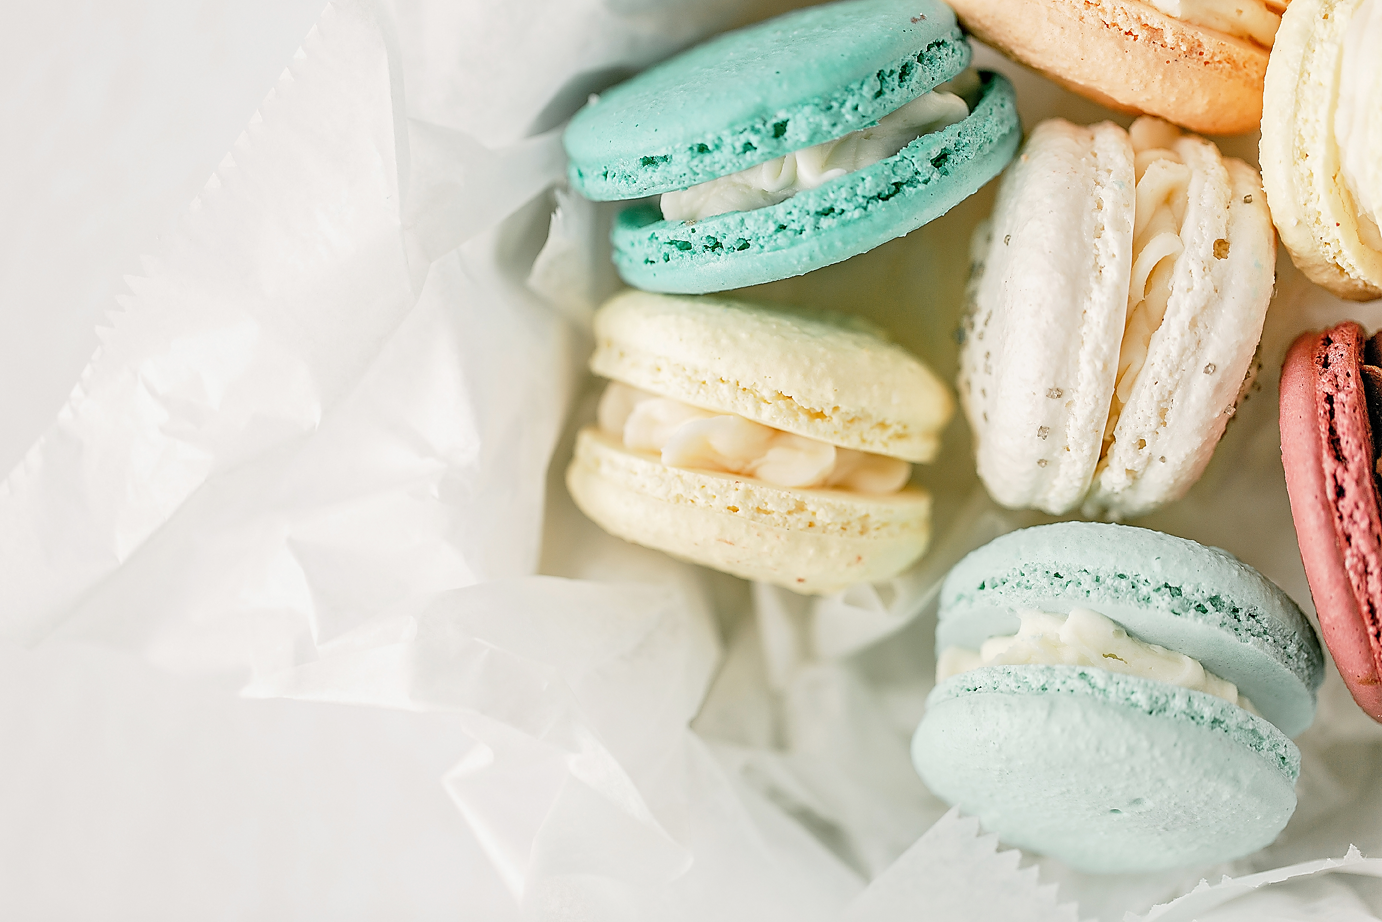 Dallas Food Photographer Flower Mound The Flour Shop French Macarons Kate Marie Portraiture 1.png